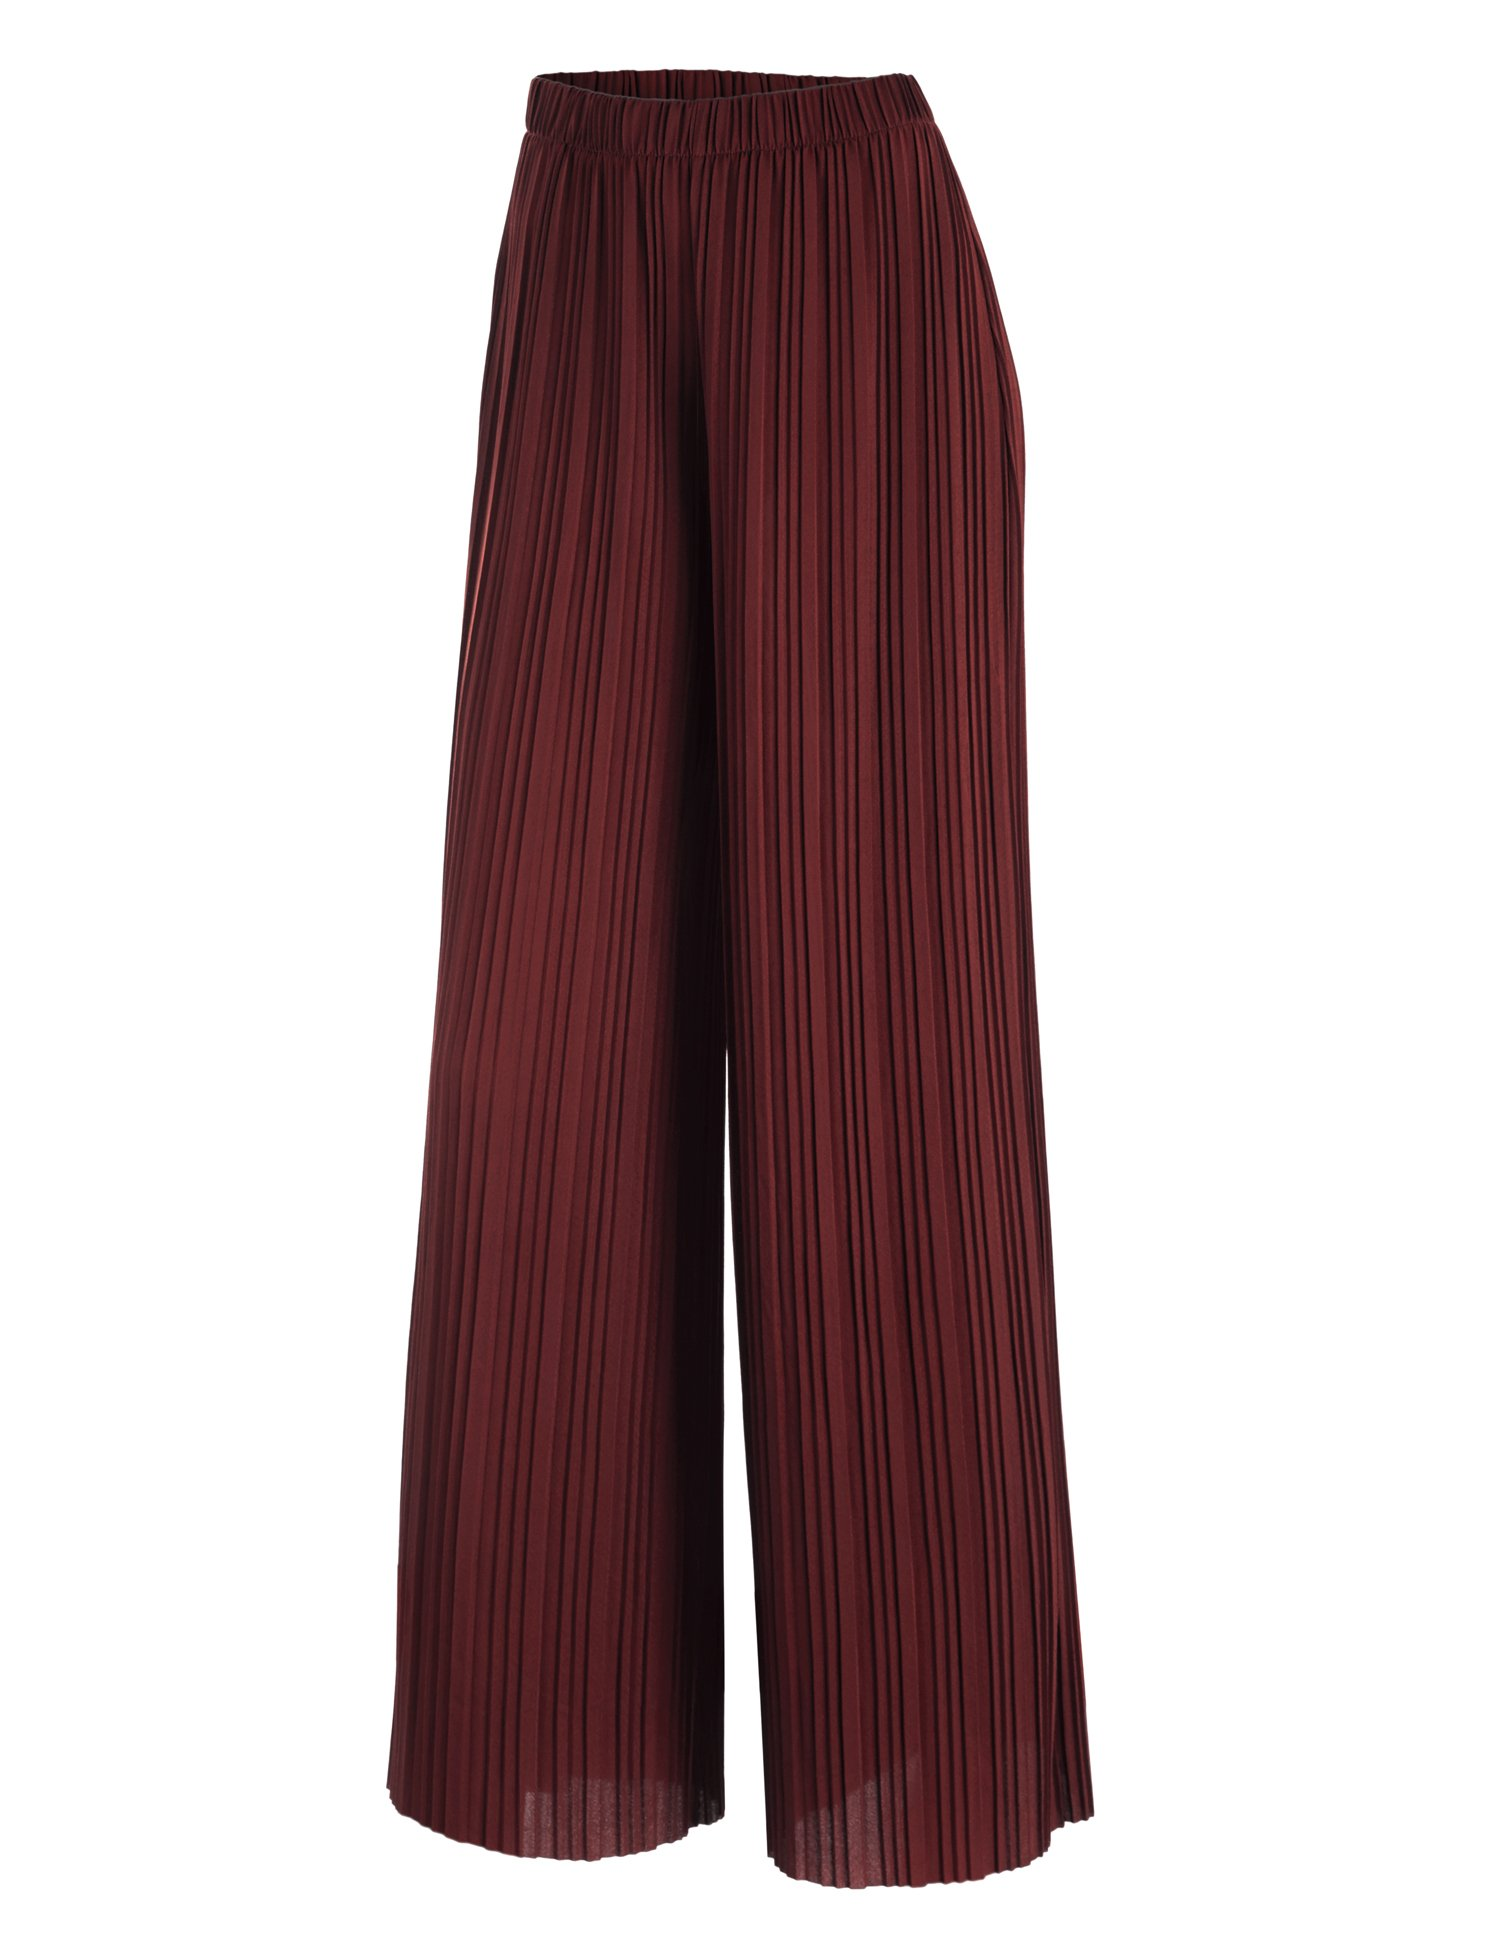 WB1795 Womens Pleated Wide Leg Pants with Elastic Waist Band-Made in USA L Wine by Lock and Love (Image #1)